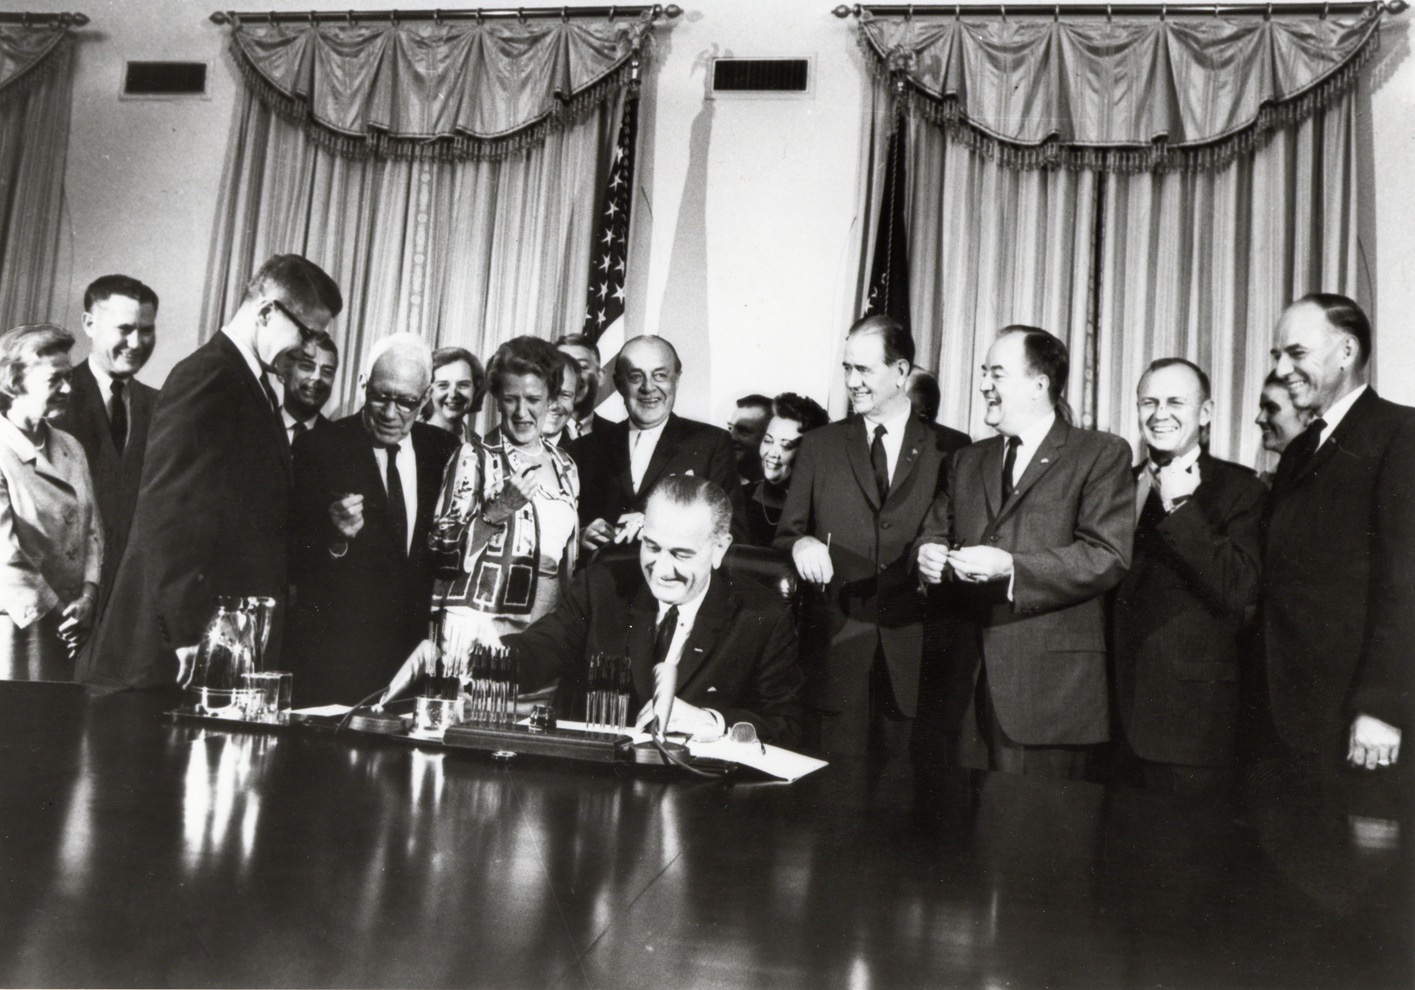 U.S. President Lyndon B. Johnson signing the Food Stamp Act of 1964.